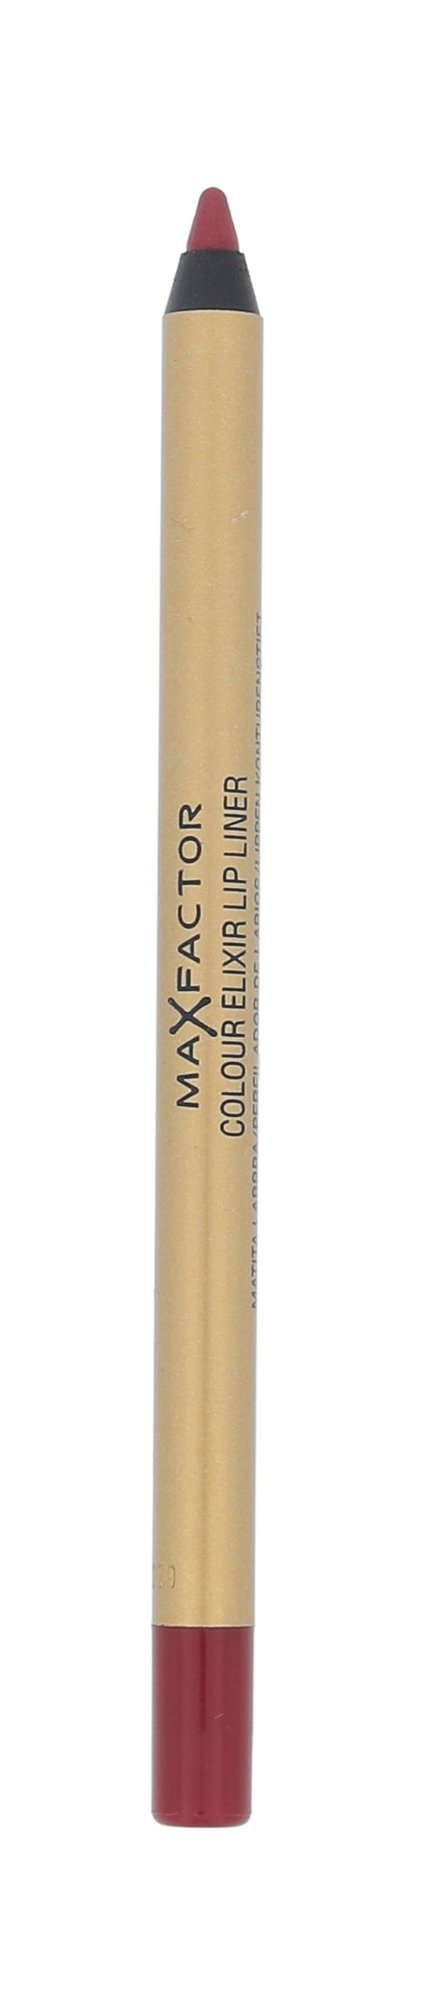 Max Factor Colour Elixir Cosmetic 2ml 12 Red Blush